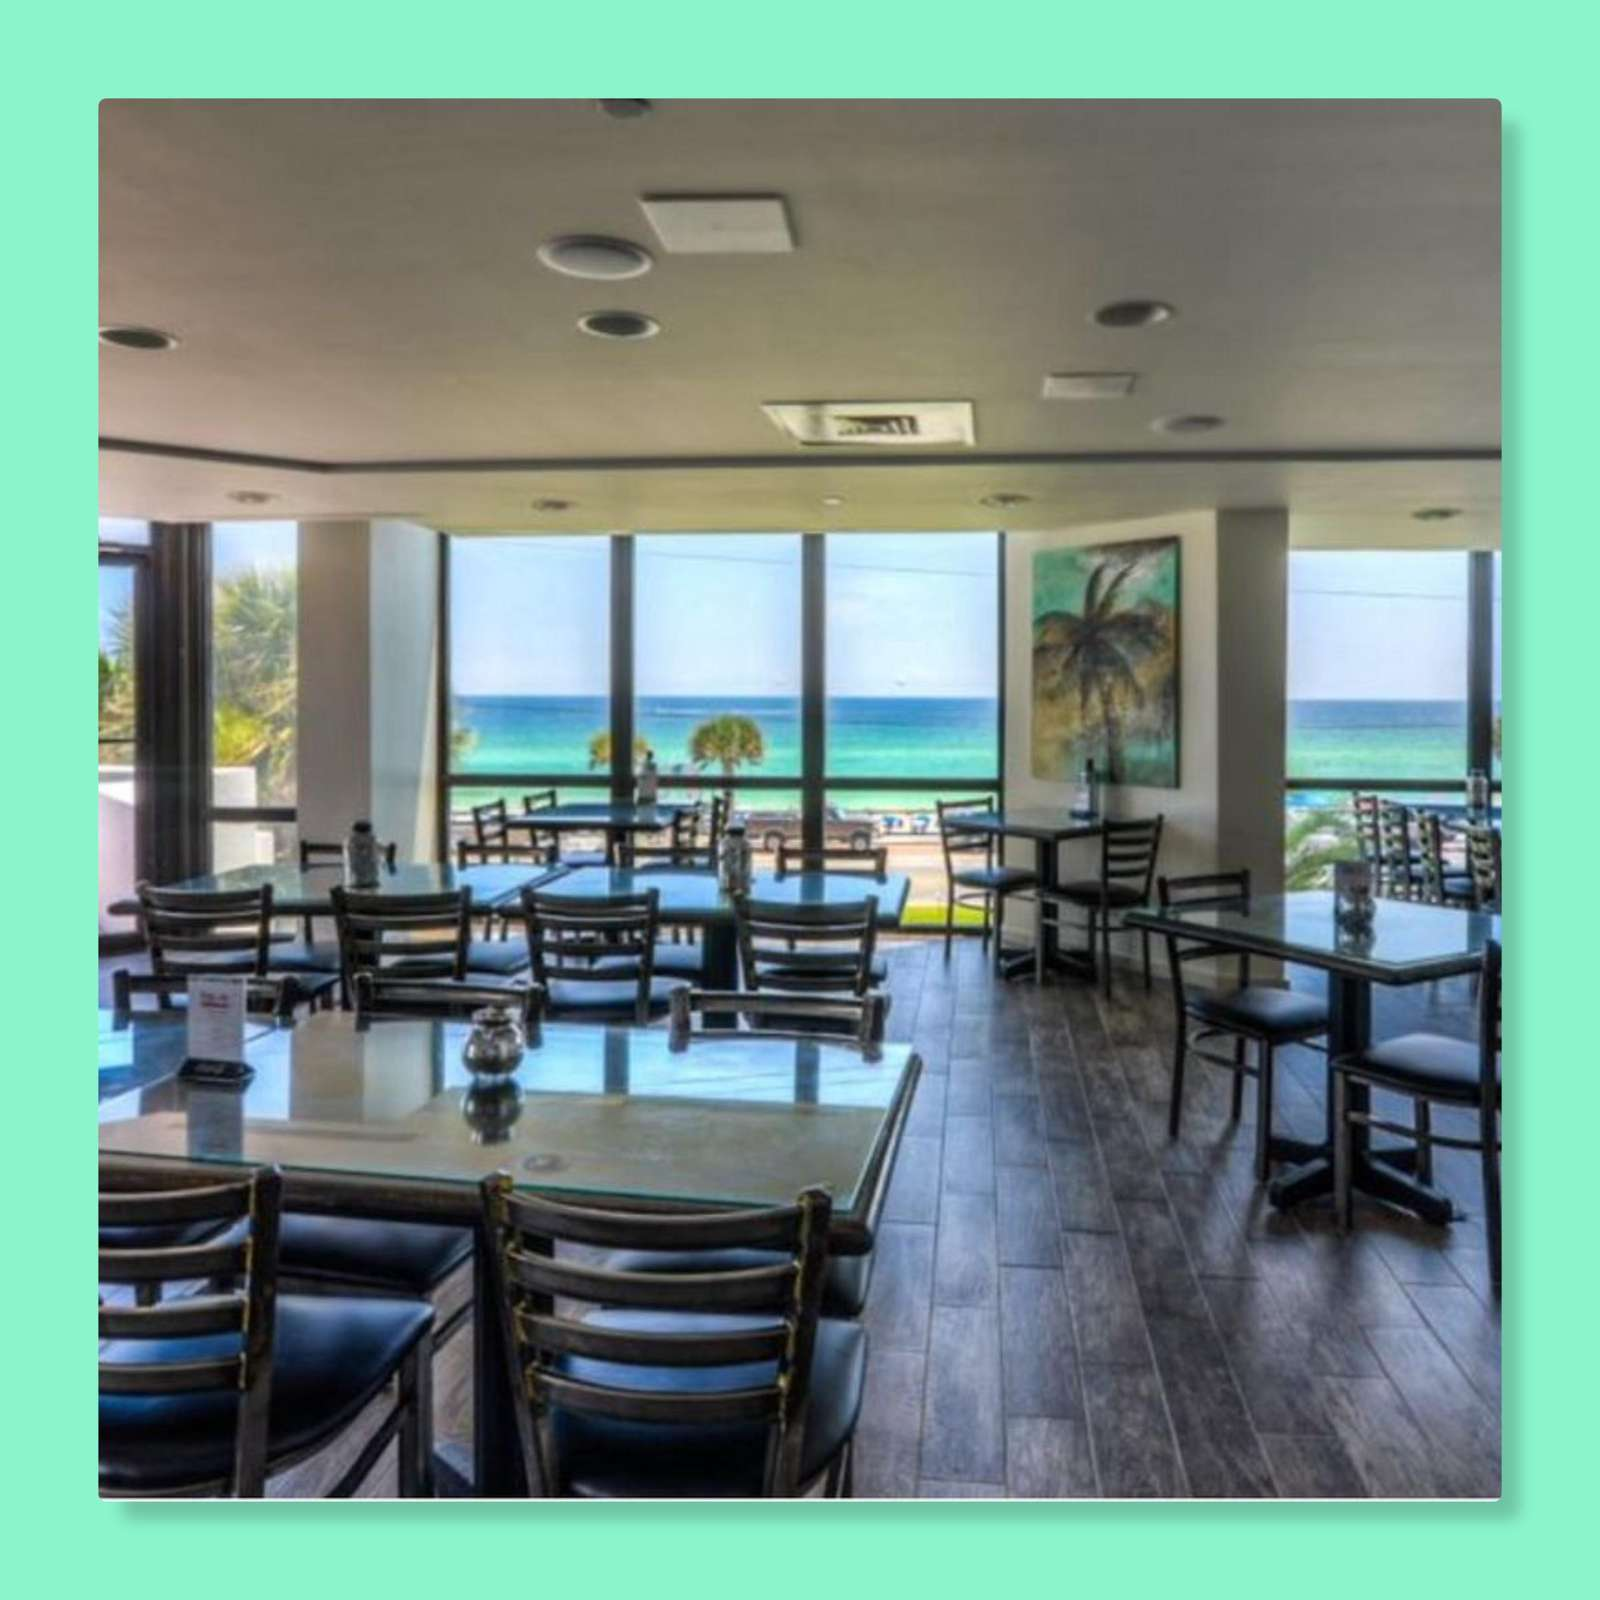 Inside the Royal Palm Grille